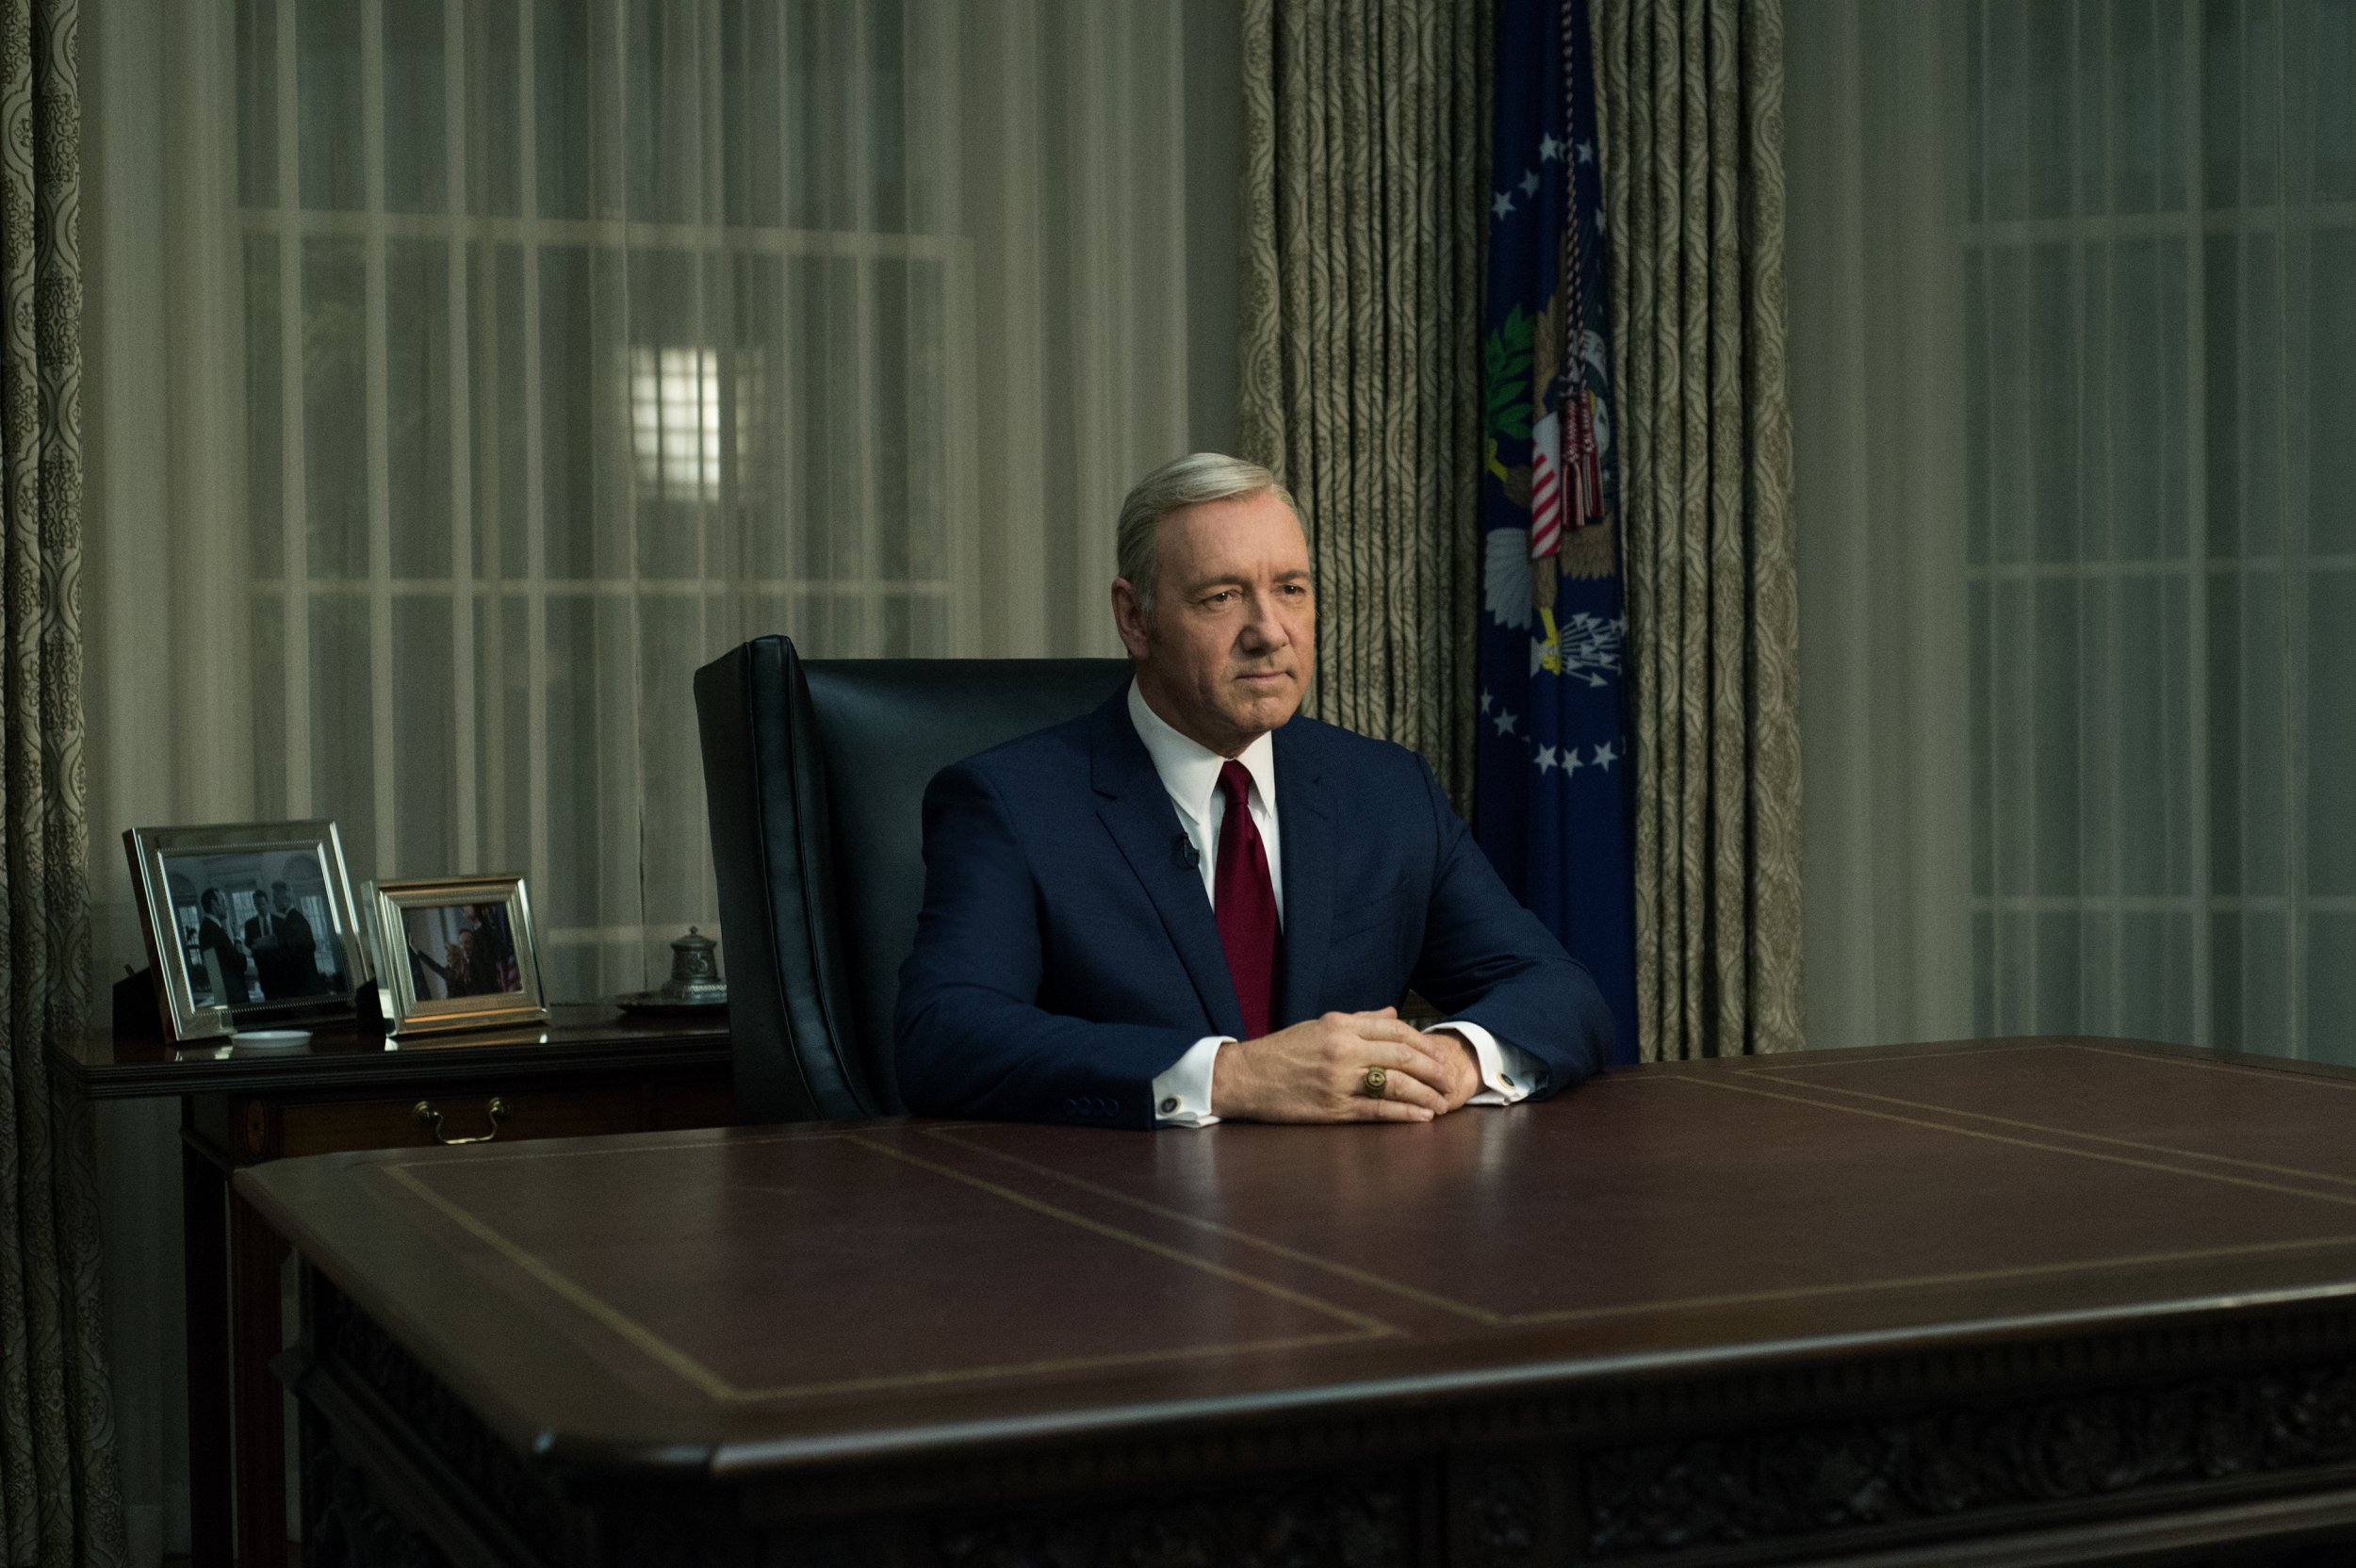 1-20-17 Frank Underwood House of Cards